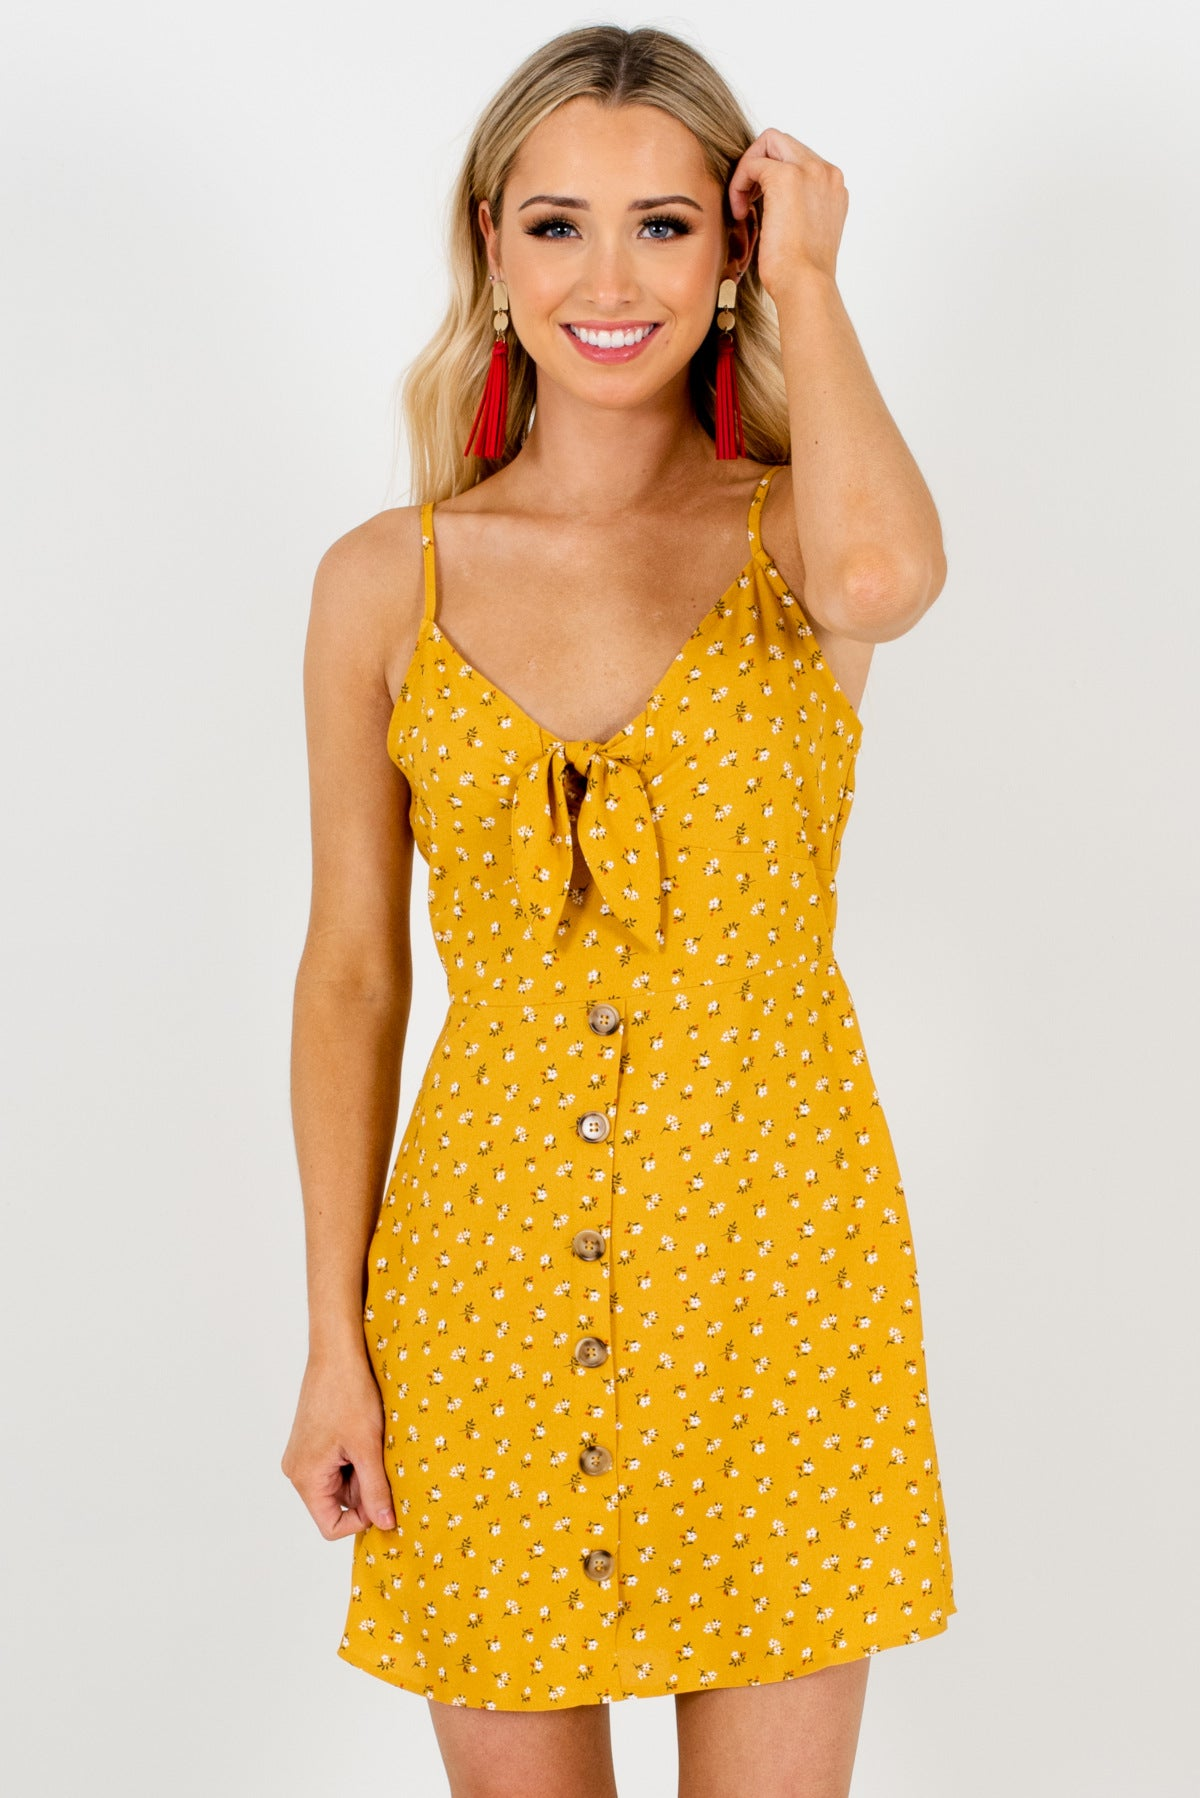 Mustard Yellow Floral Patterned Boutique Mini Dresses for Women